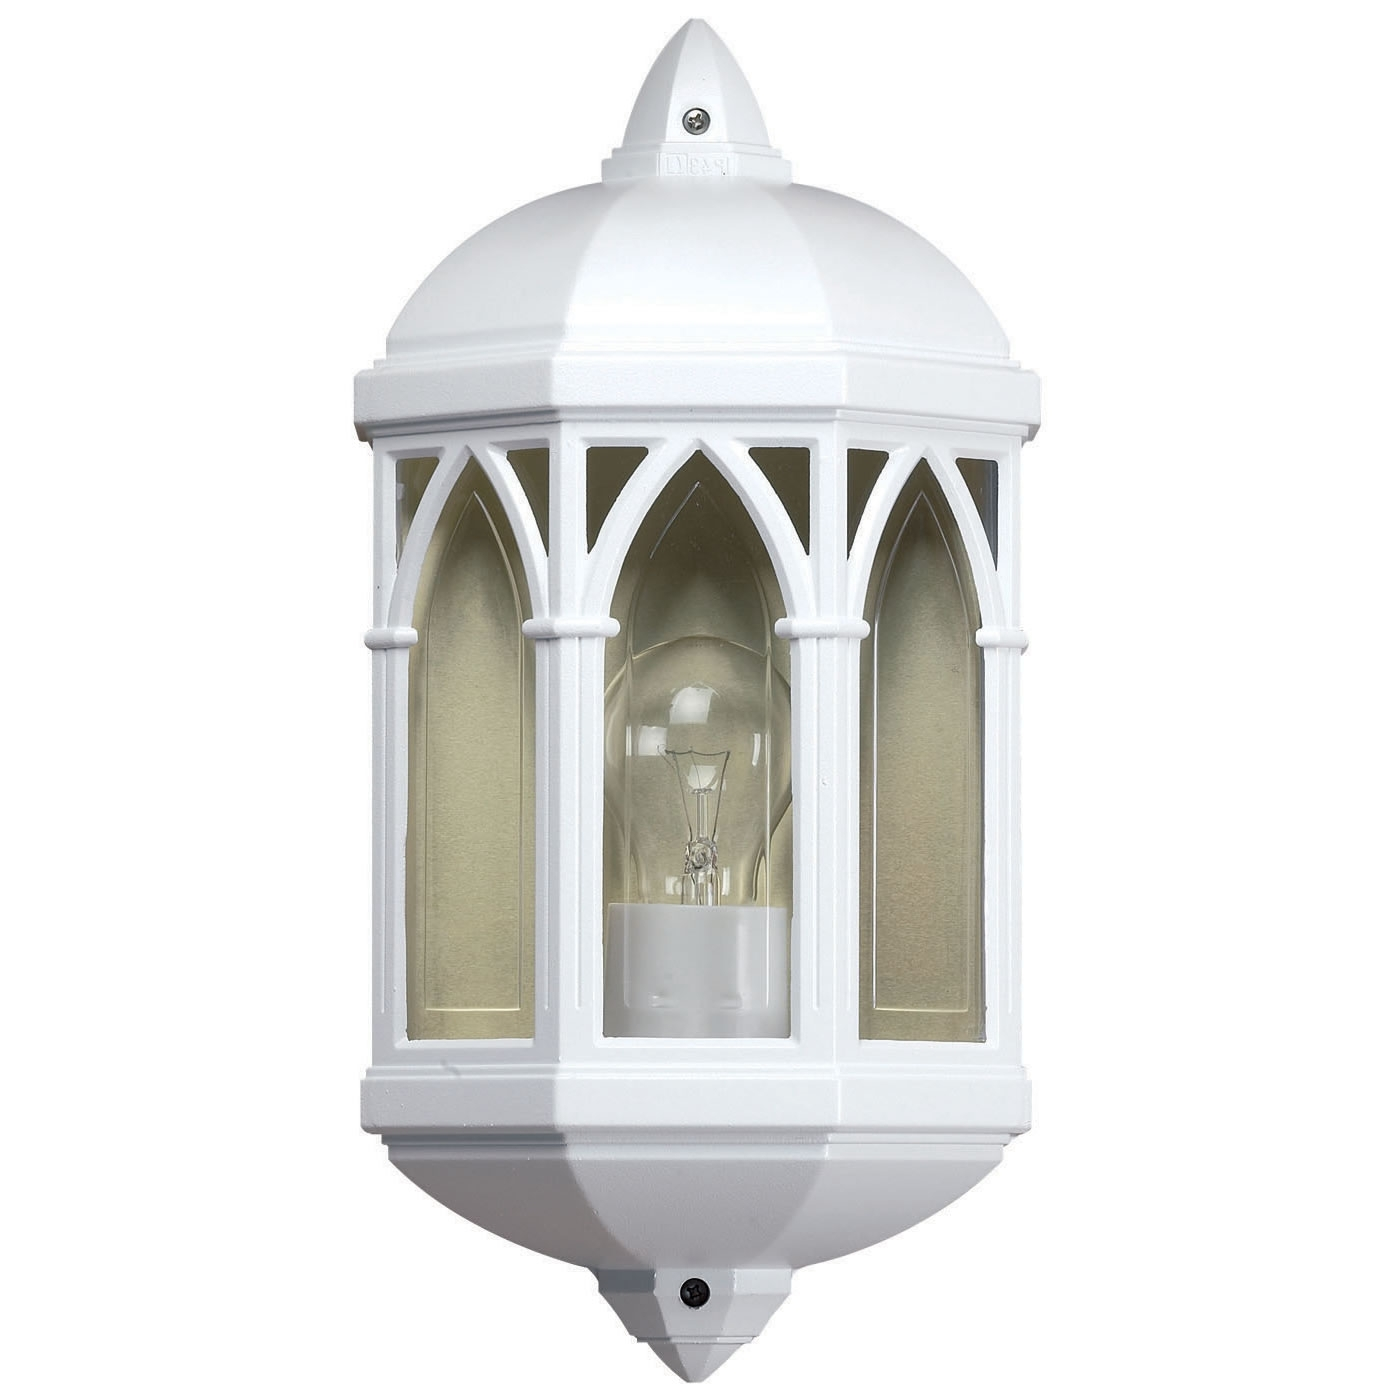 Outdoor Lighting: Inspiring White Outdoor Light Fixtures White With Regard To Most Recent Outdoor Ceiling Lights At Amazon (View 17 of 20)